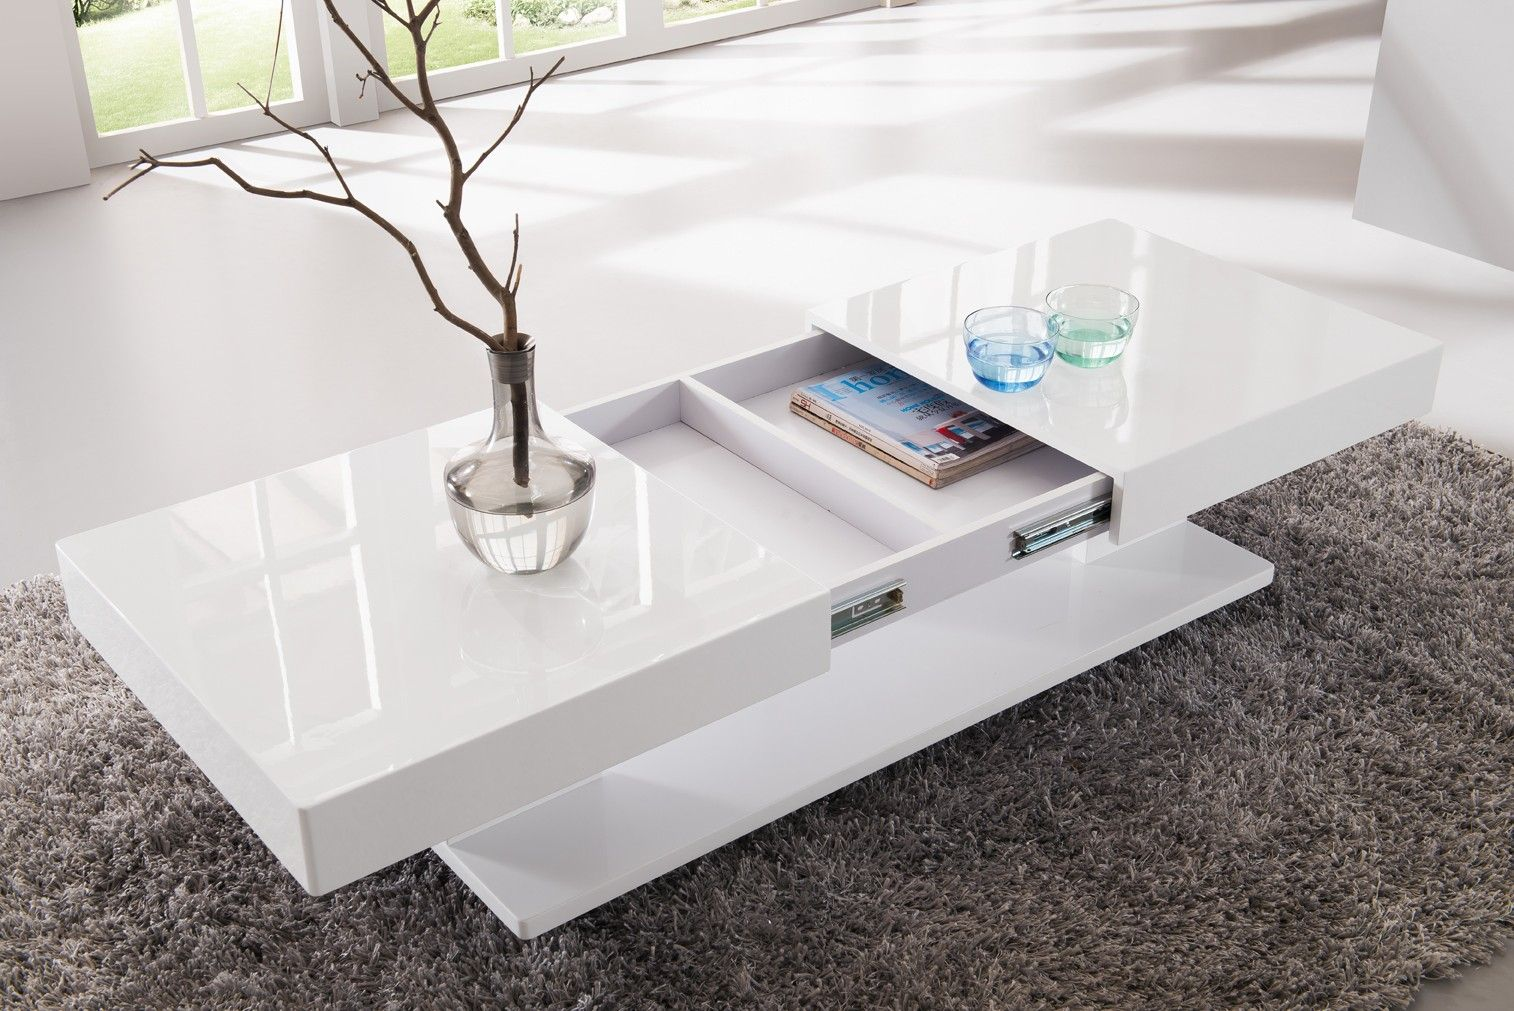 Table basse design blanc laqu avec rangements et plateaux for Table de salon style scandinave